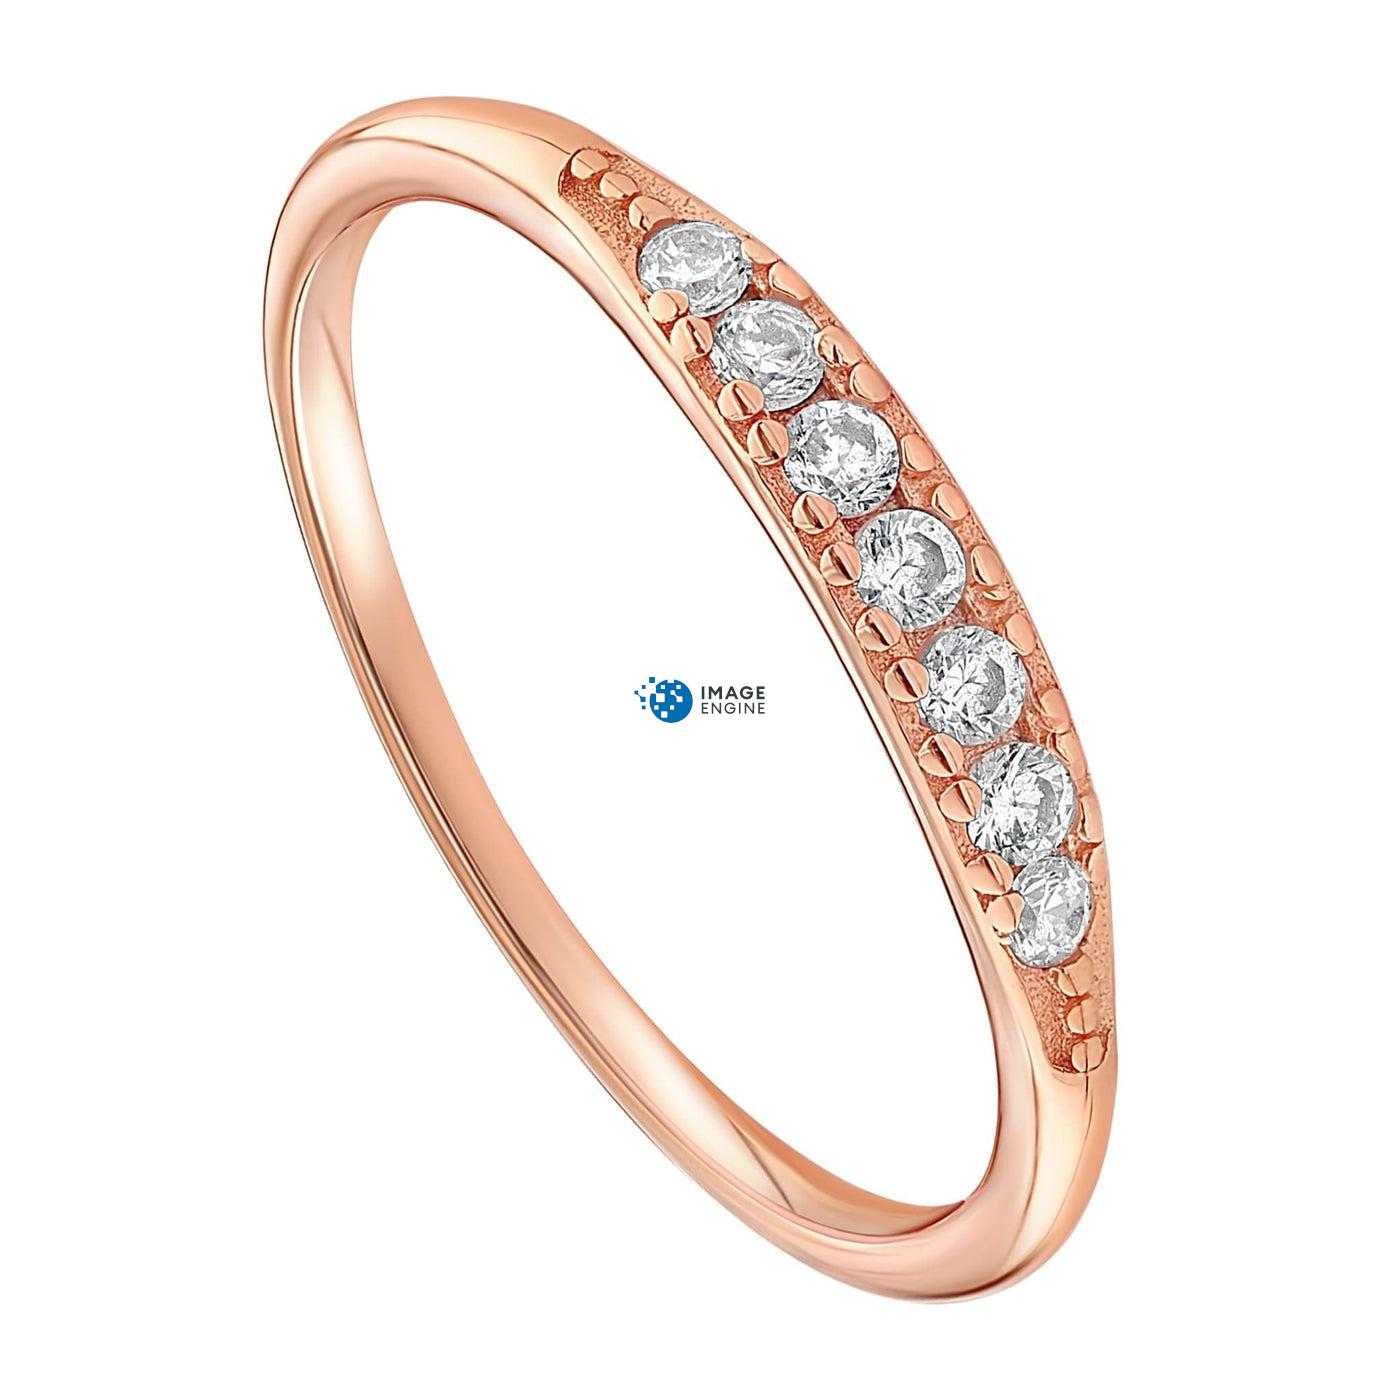 Kathleen Stack Ring - Three Quarter View - 18K Rose Gold Vermeil